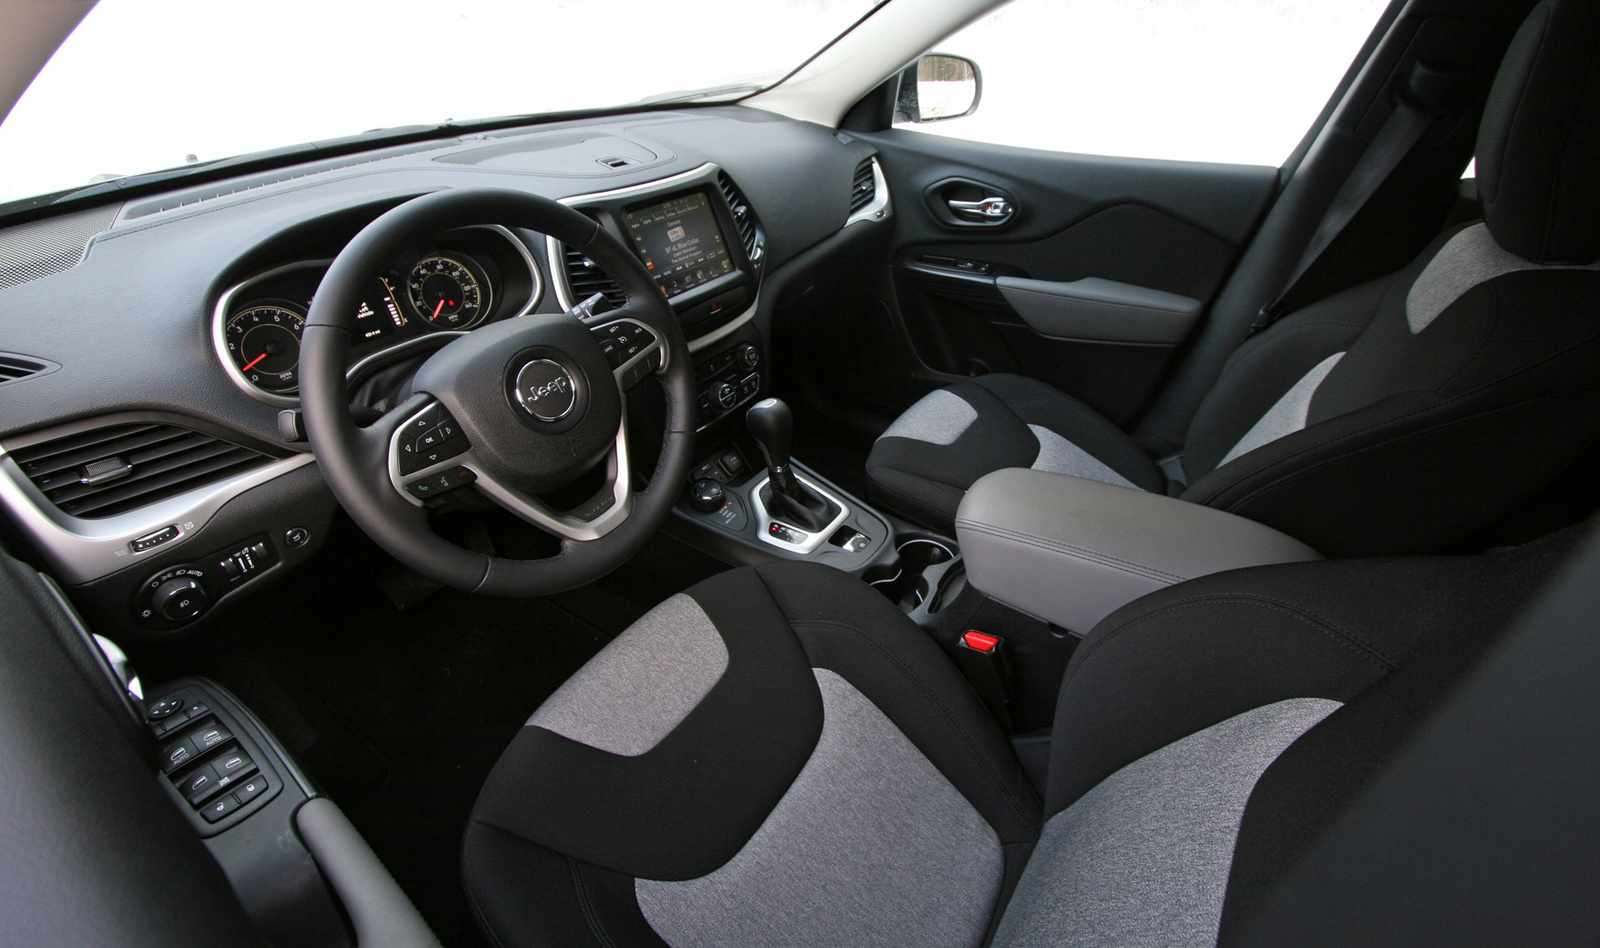 2014 jeep cherokee interior pictures cargurus. Cars Review. Best American Auto & Cars Review